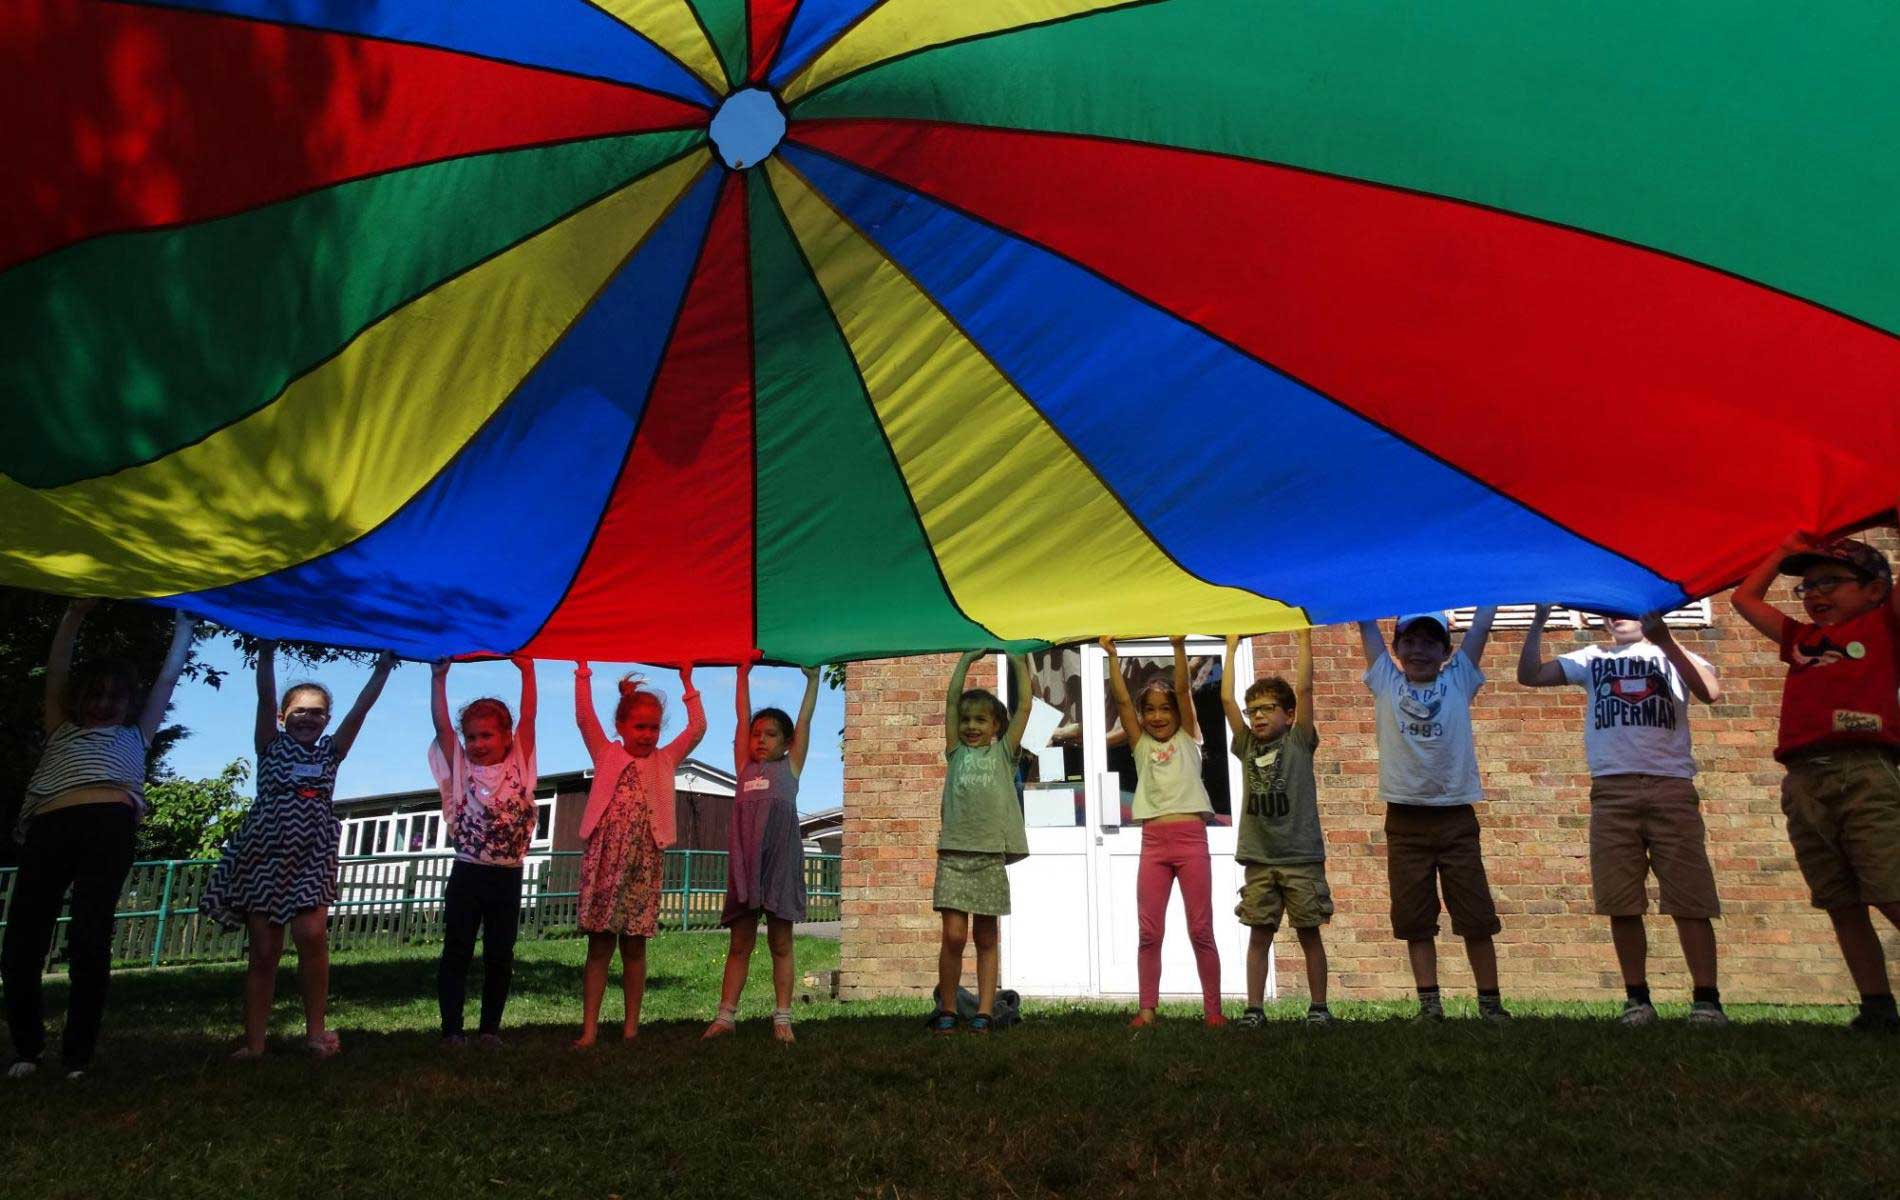 Children playing with parachute over summer at mini minors